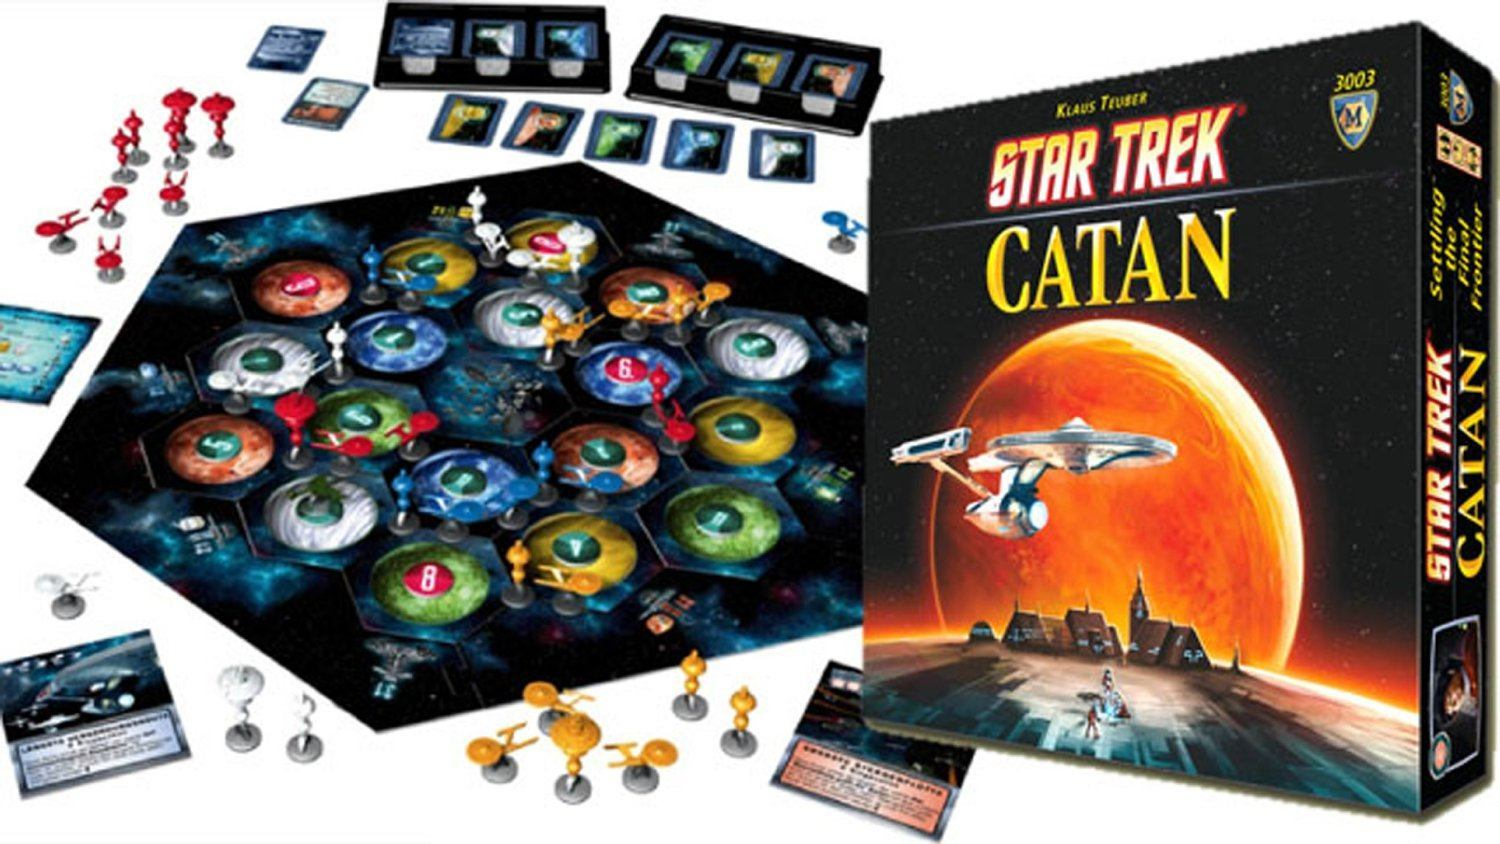 catan board games review 2015 hottest holiday games for all ages movie tv tech geeks news. Black Bedroom Furniture Sets. Home Design Ideas